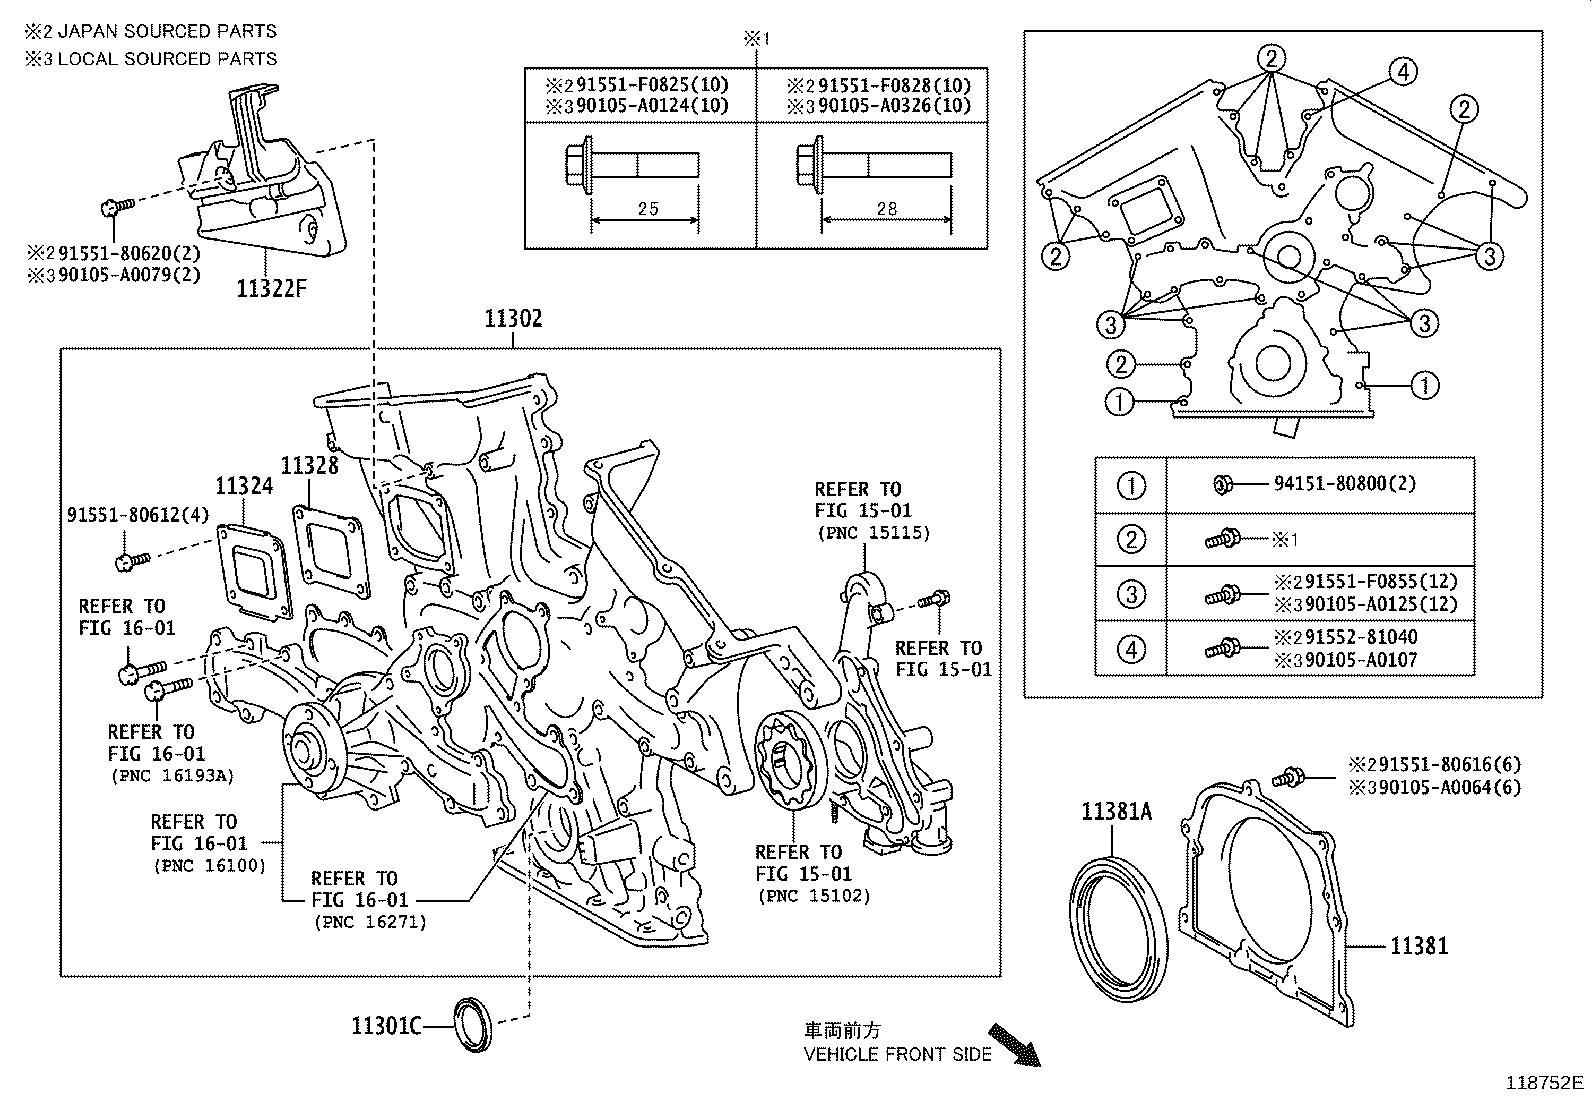 [DIAGRAM] 2006 Toyota Highlander Engine Diagram FULL